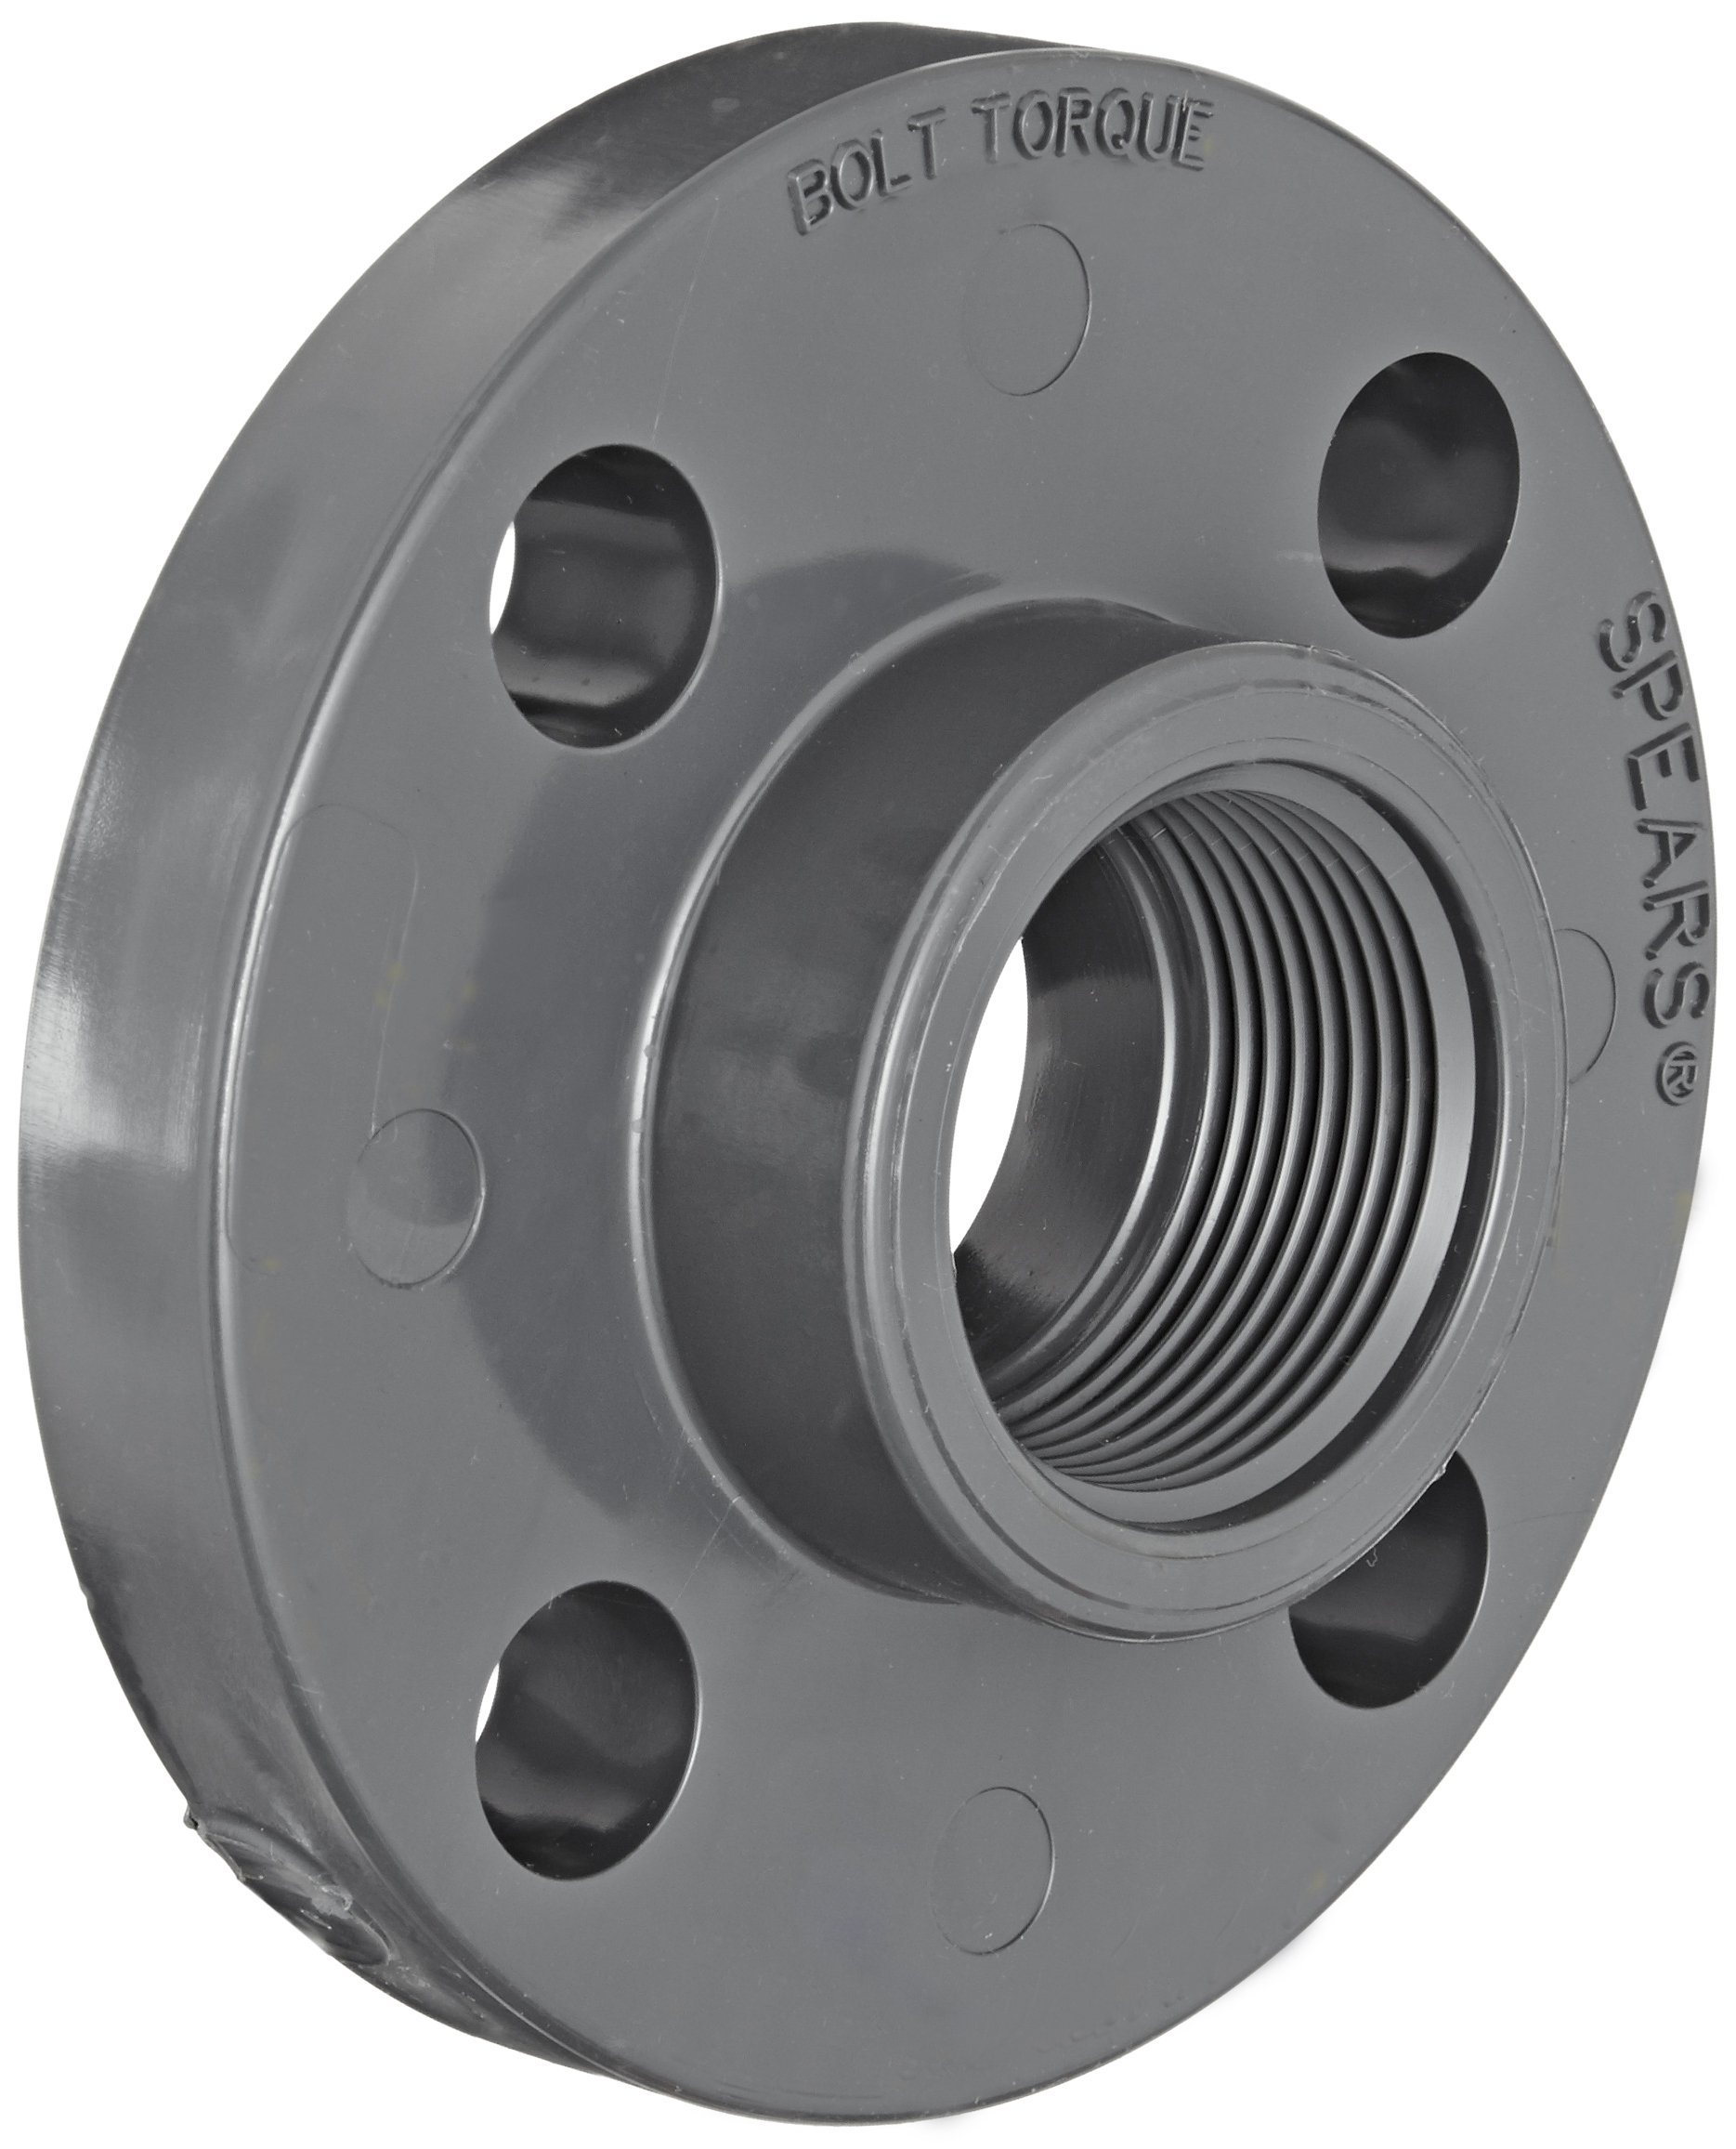 Spears 852 Series PVC Pipe Fitting, One Piece Flange, Class 150, Schedule 80, 1'' NPT Female